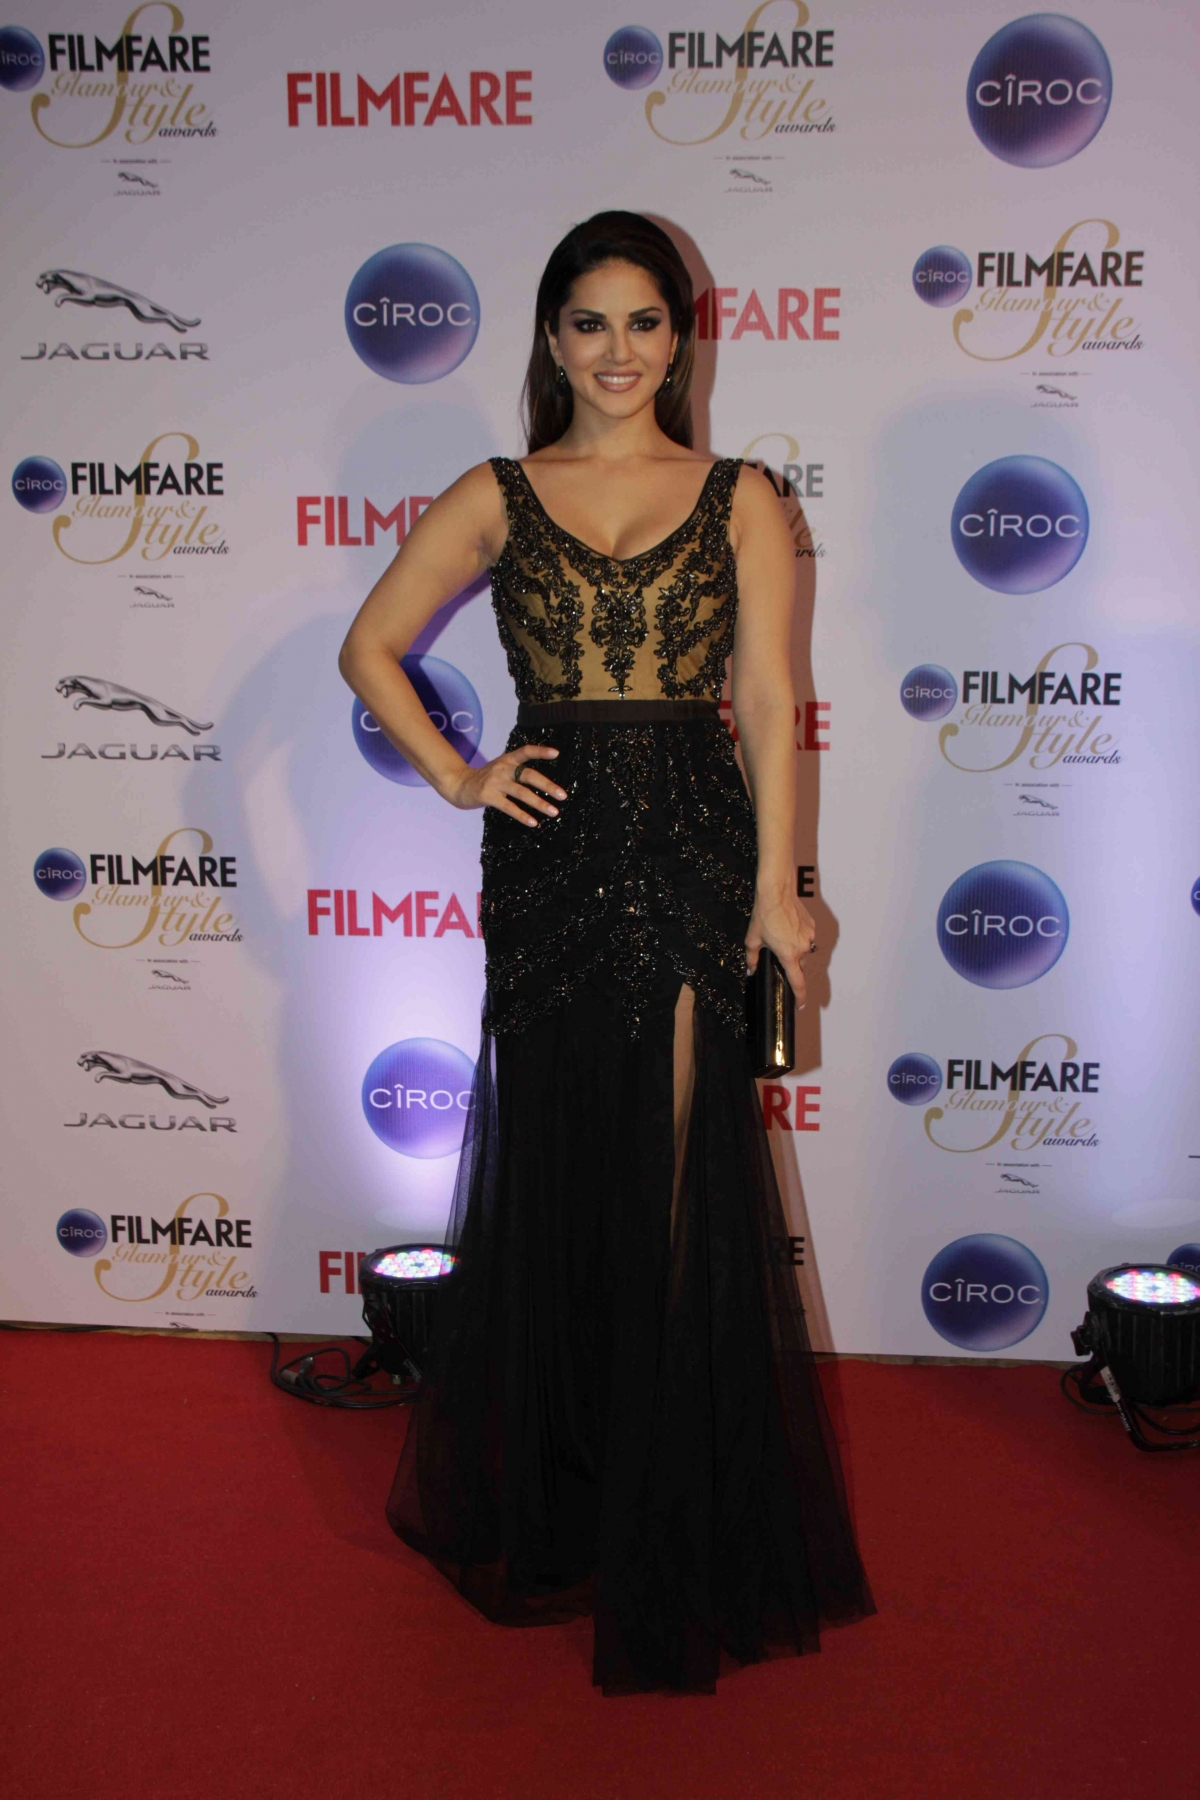 http://data1.ibtimes.co.in/en/full/564780/kareena-kapoor-khan-jacqueline-fernandez-alia-bhatt-other-best-dressed-divas-filmfare-glamour.jpg